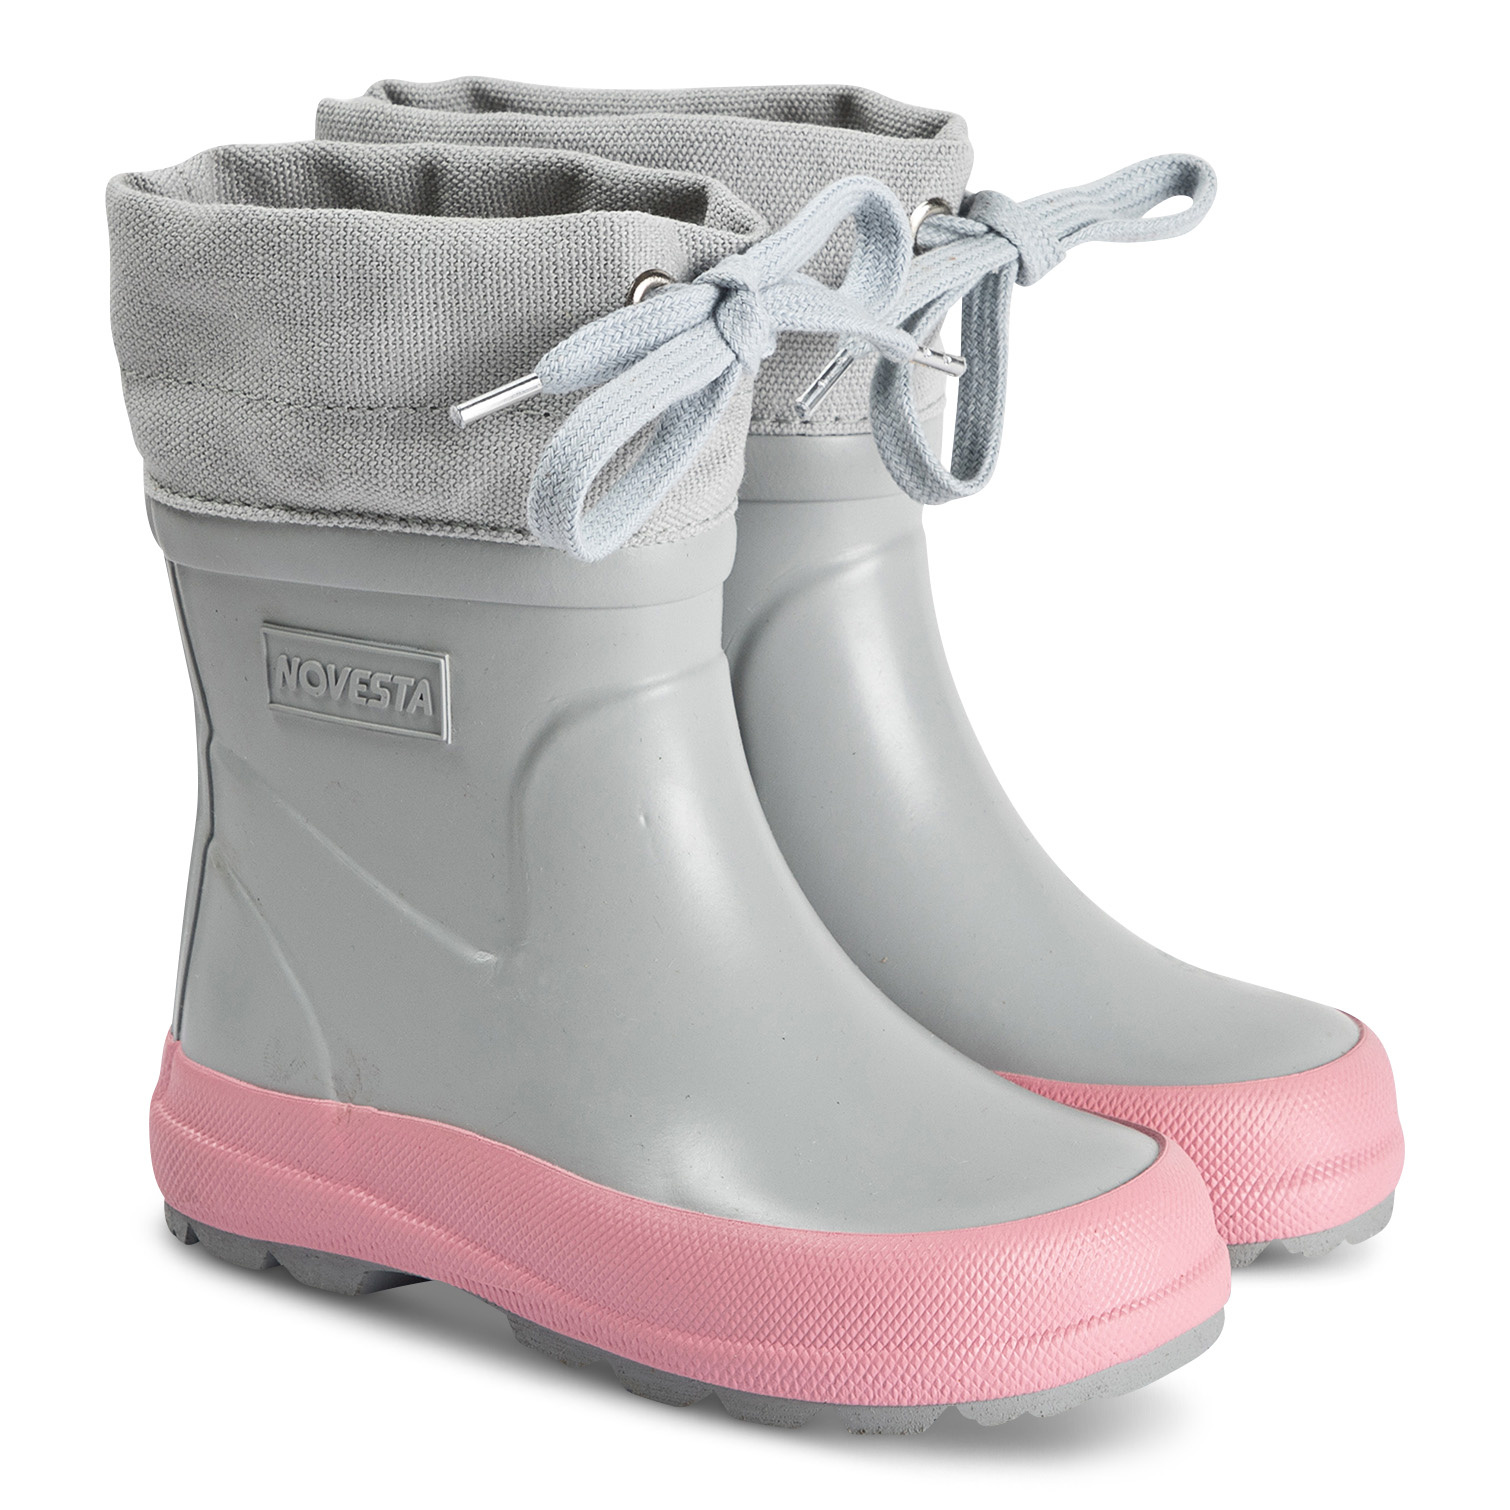 KIDDO WINTER BOOTS - Grey / Pink-1